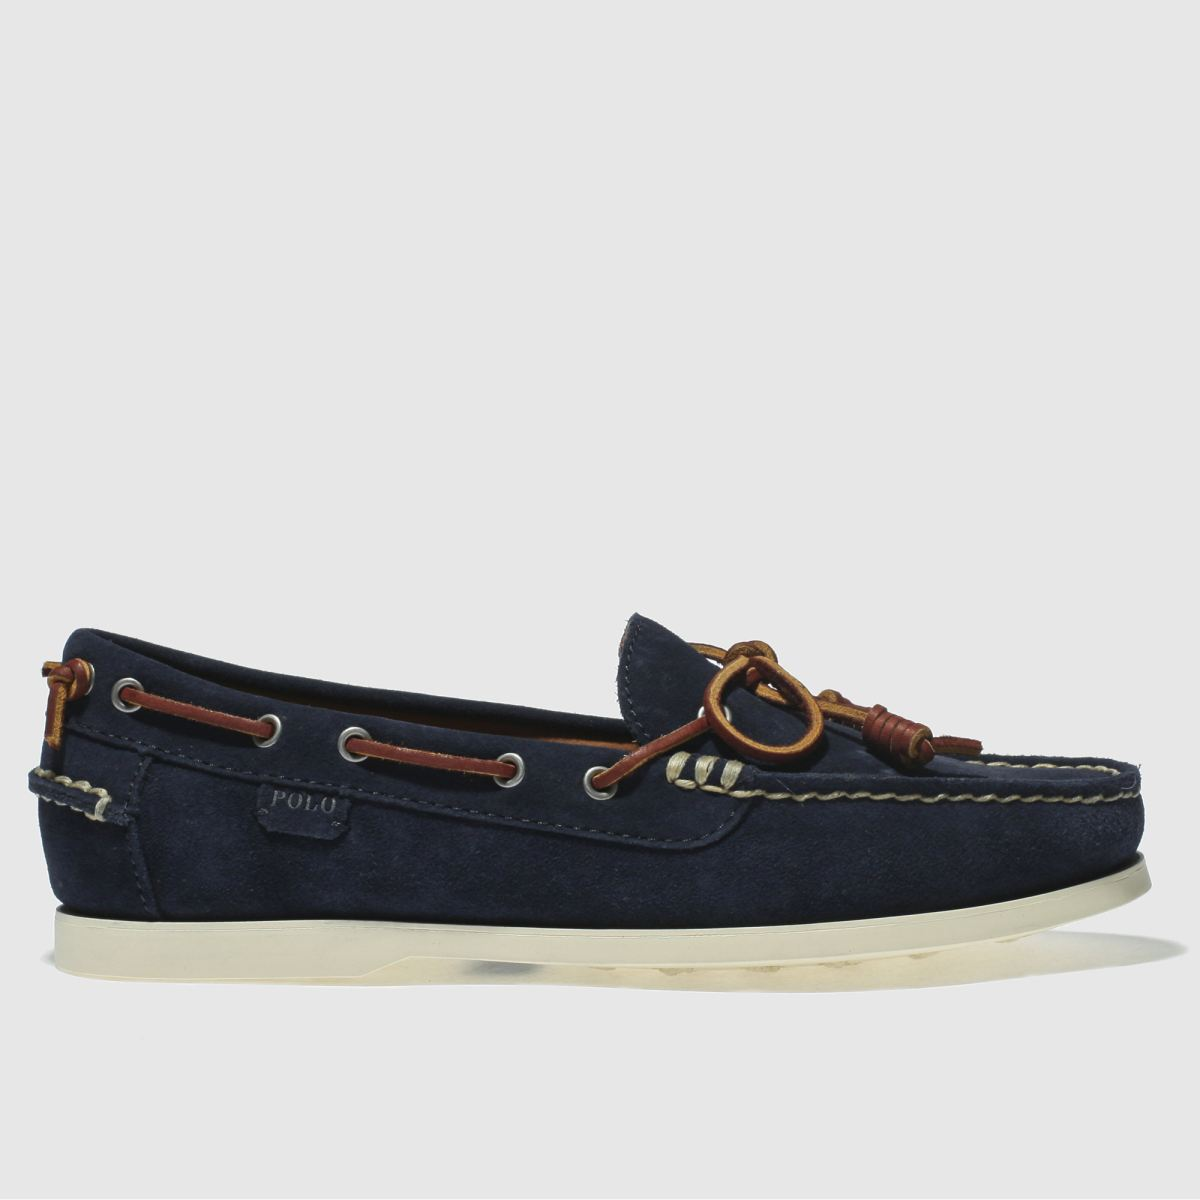 Polo Ralph Lauren Navy Millard Shoes